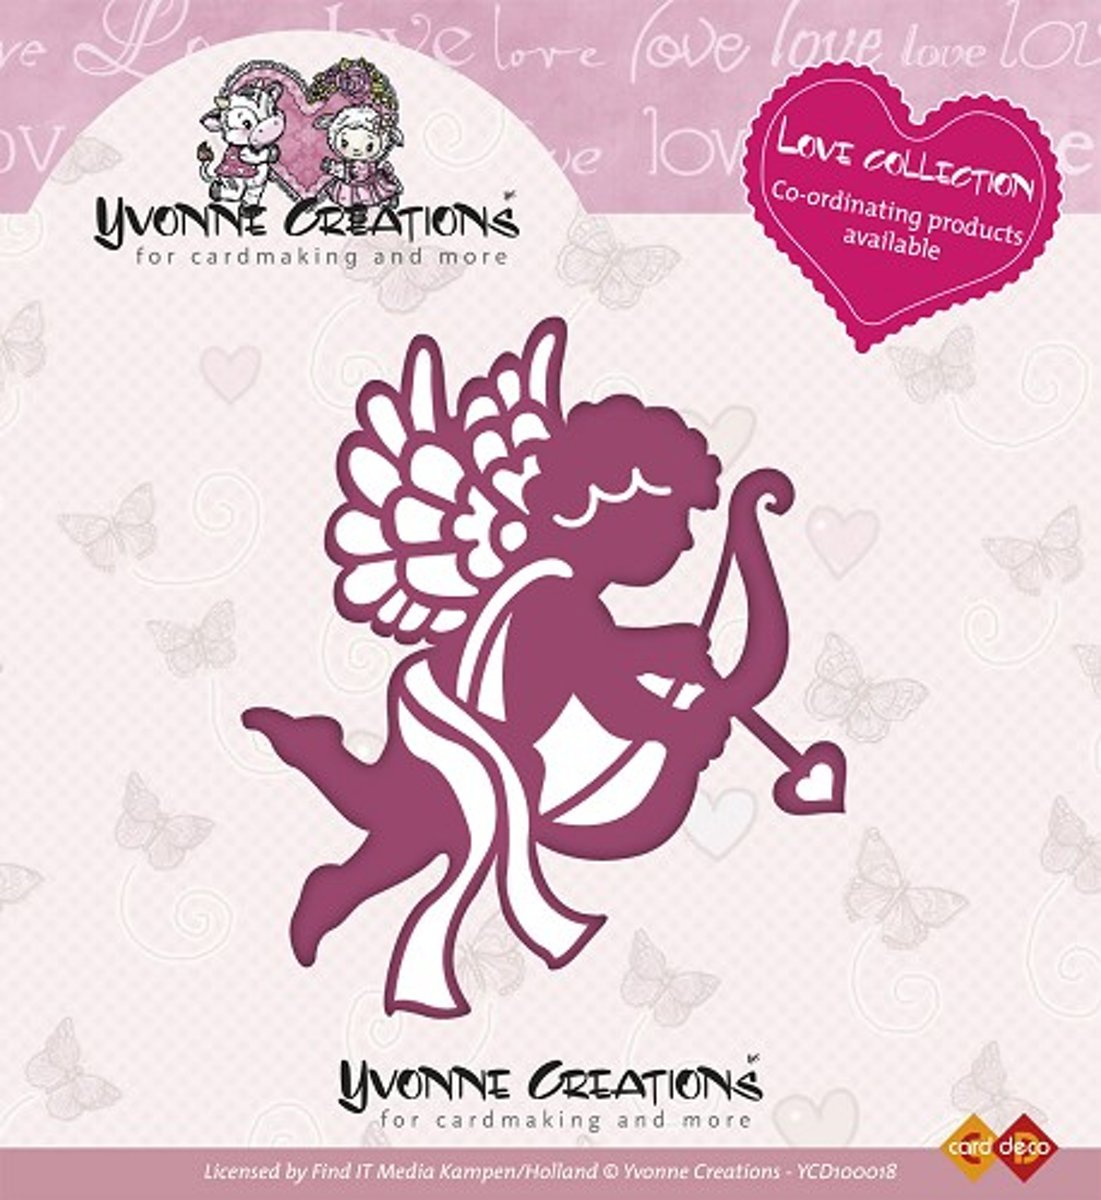 Die - Yvonne Creations - Love Collection - Cupido kopen